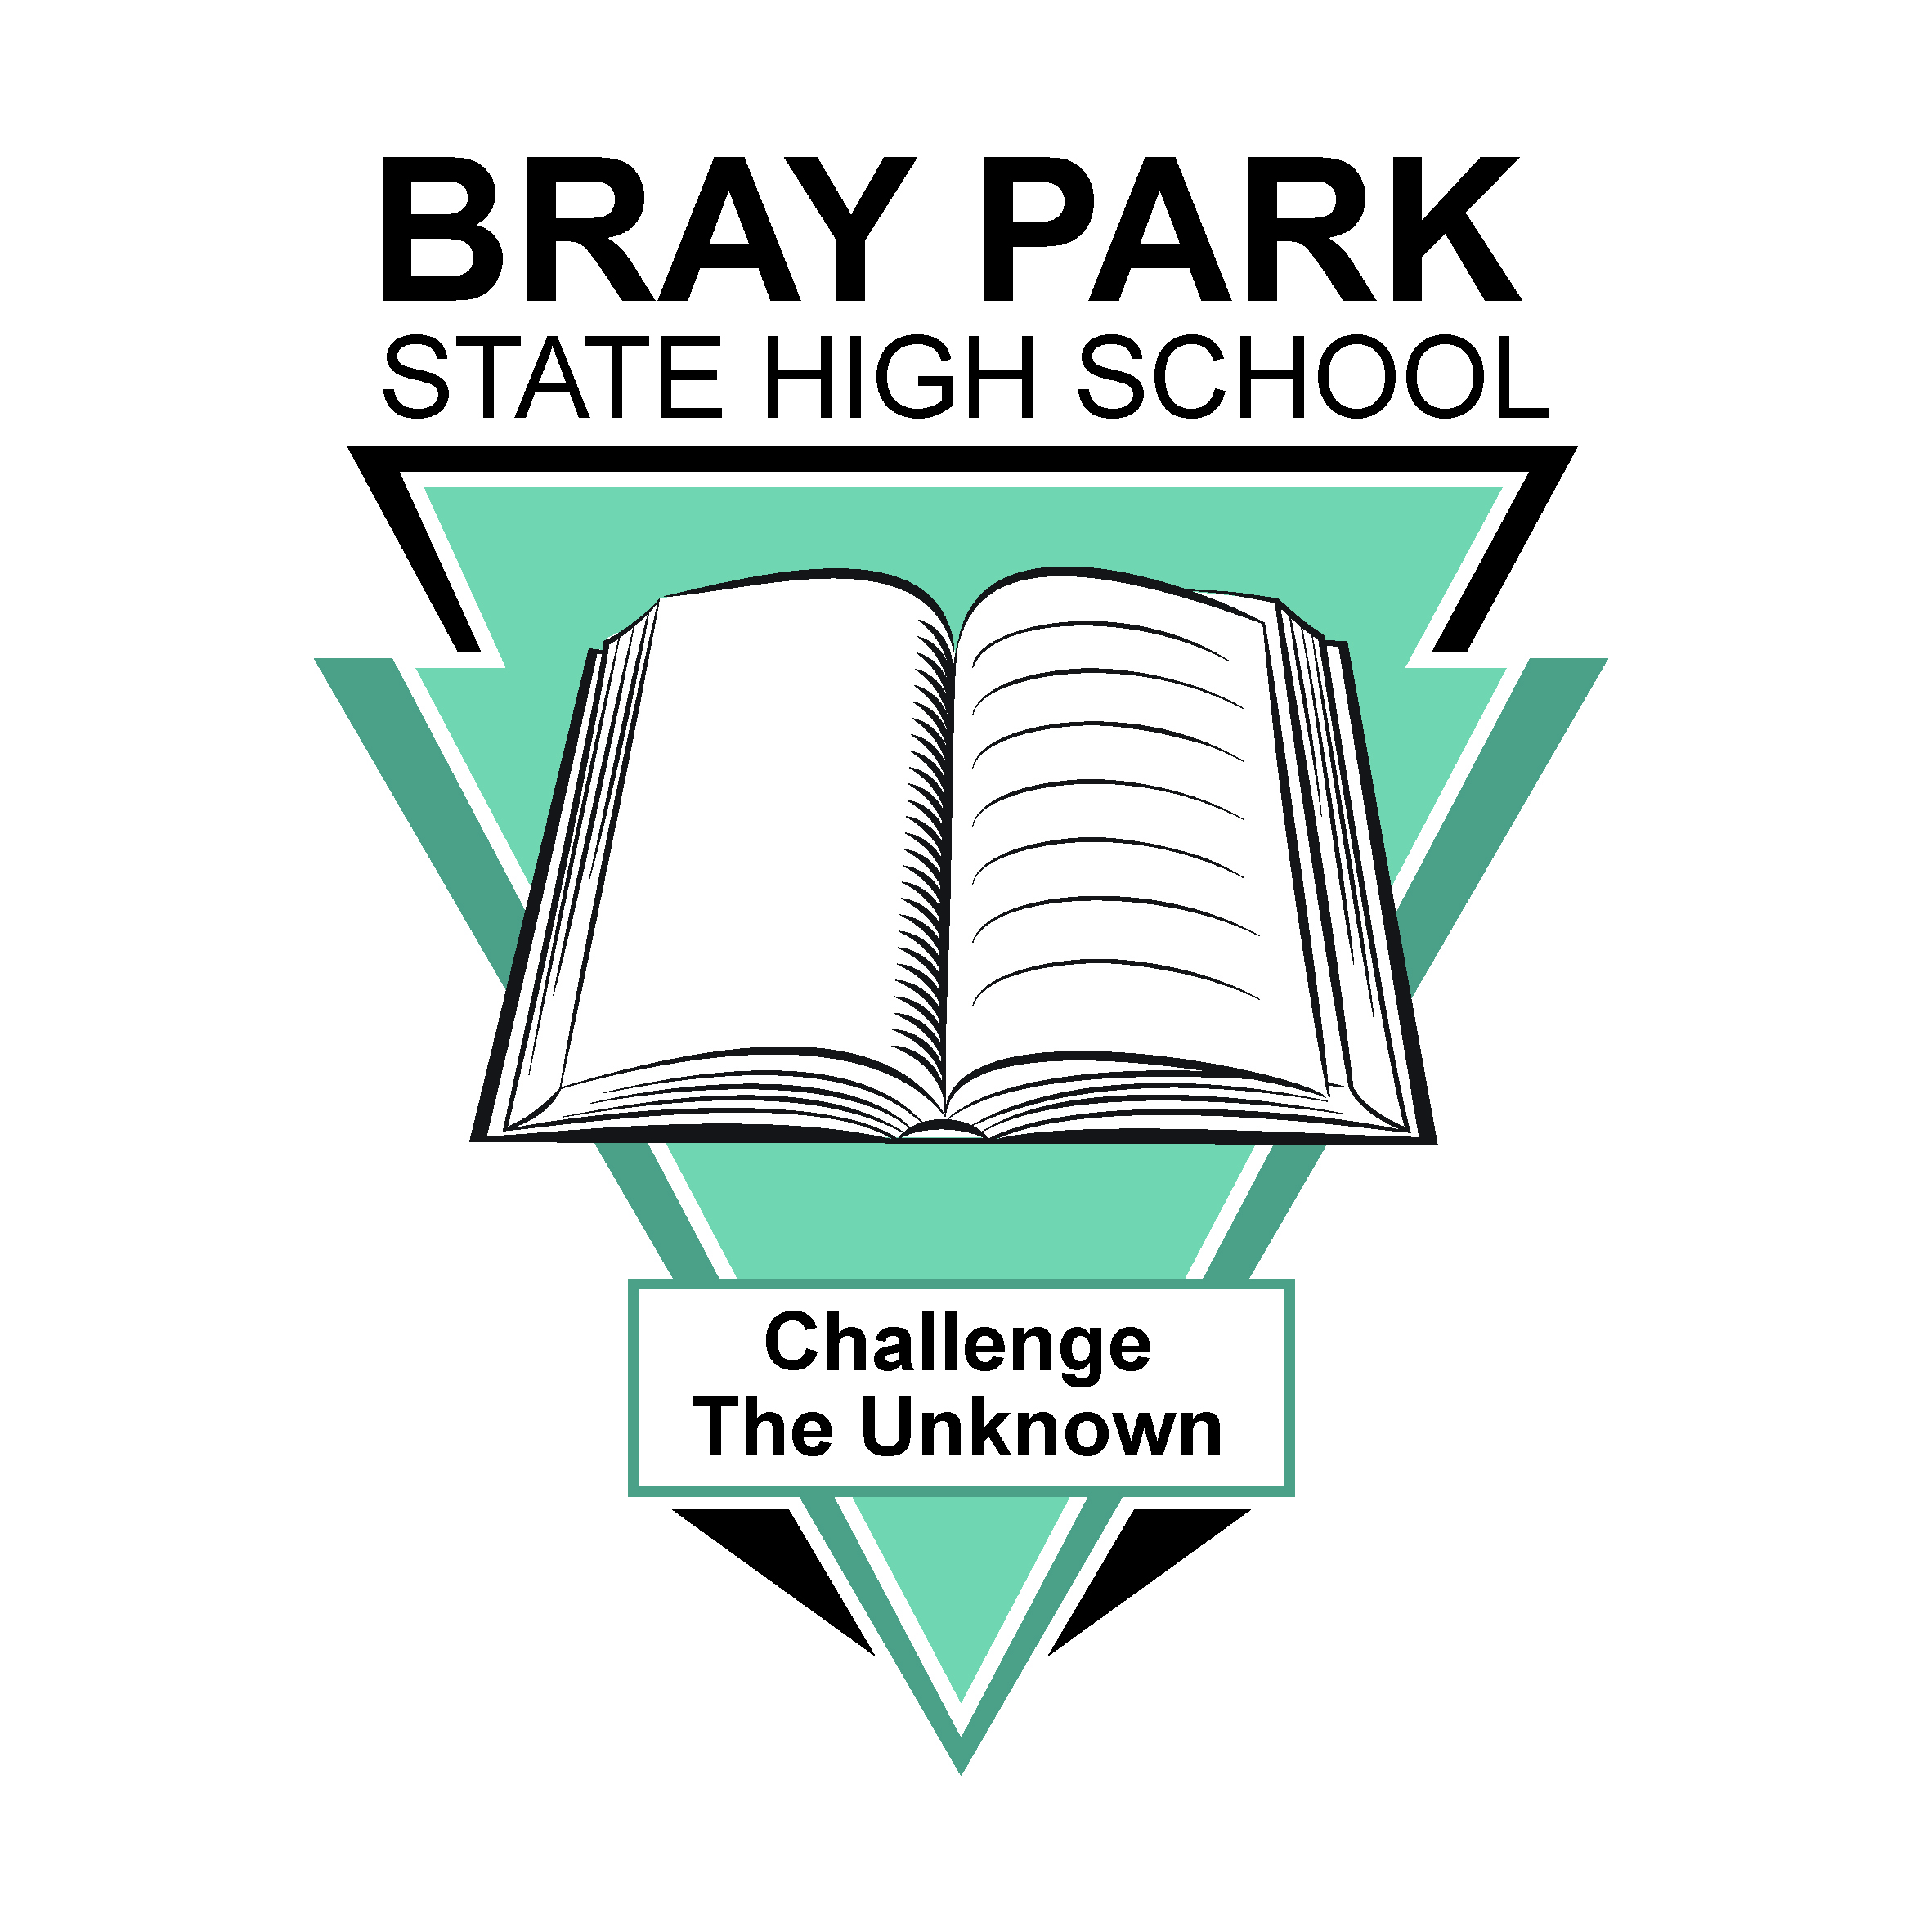 Bray Park State High School